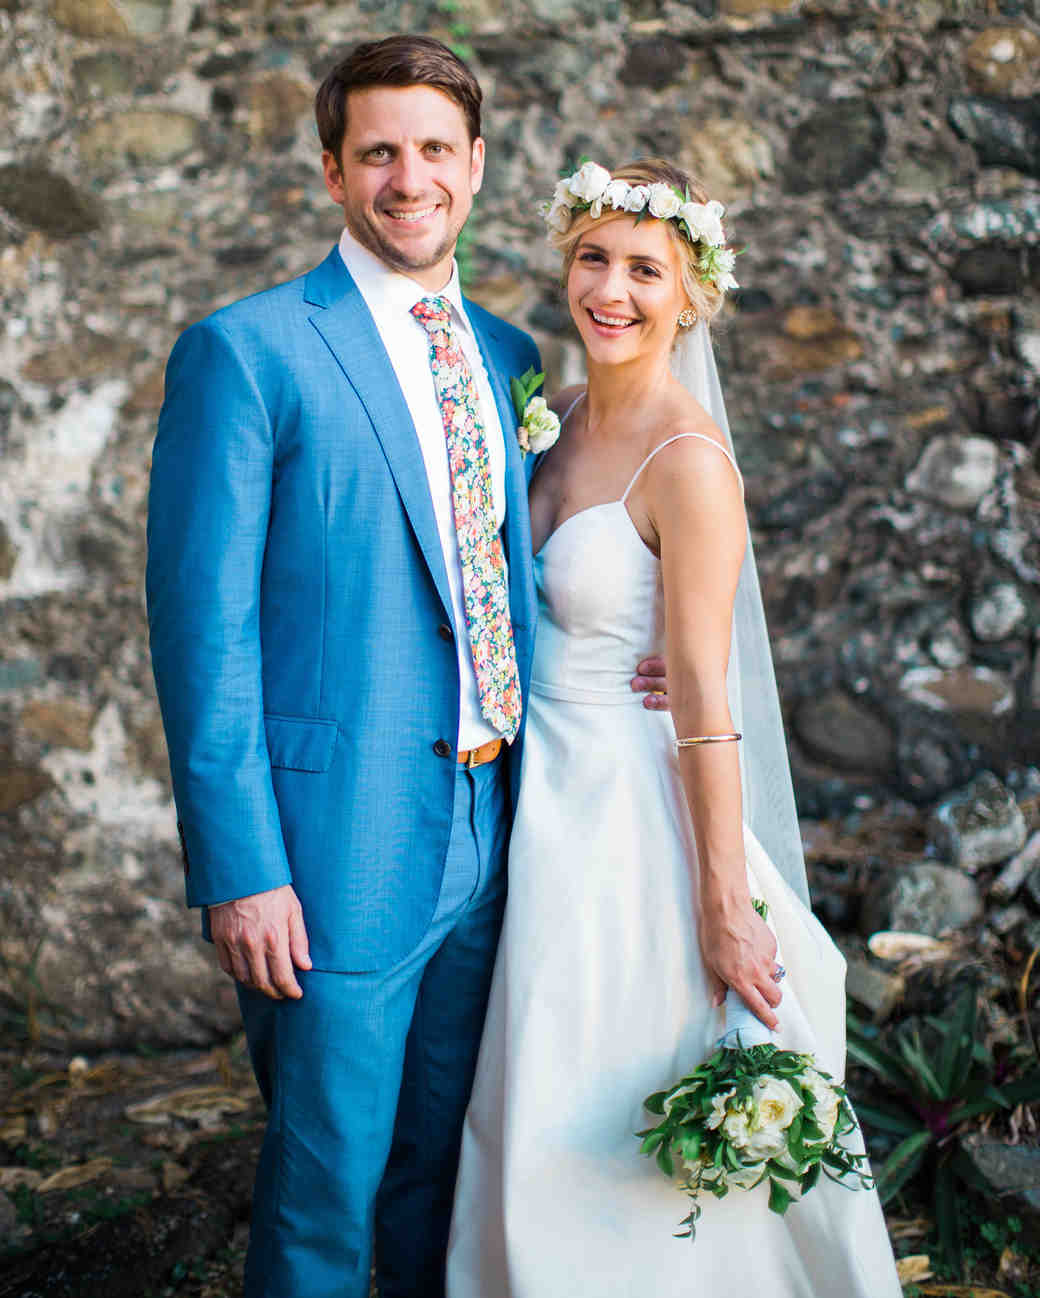 Island Wedding Groom in Blue and Bride Wearing a White Flower Crown